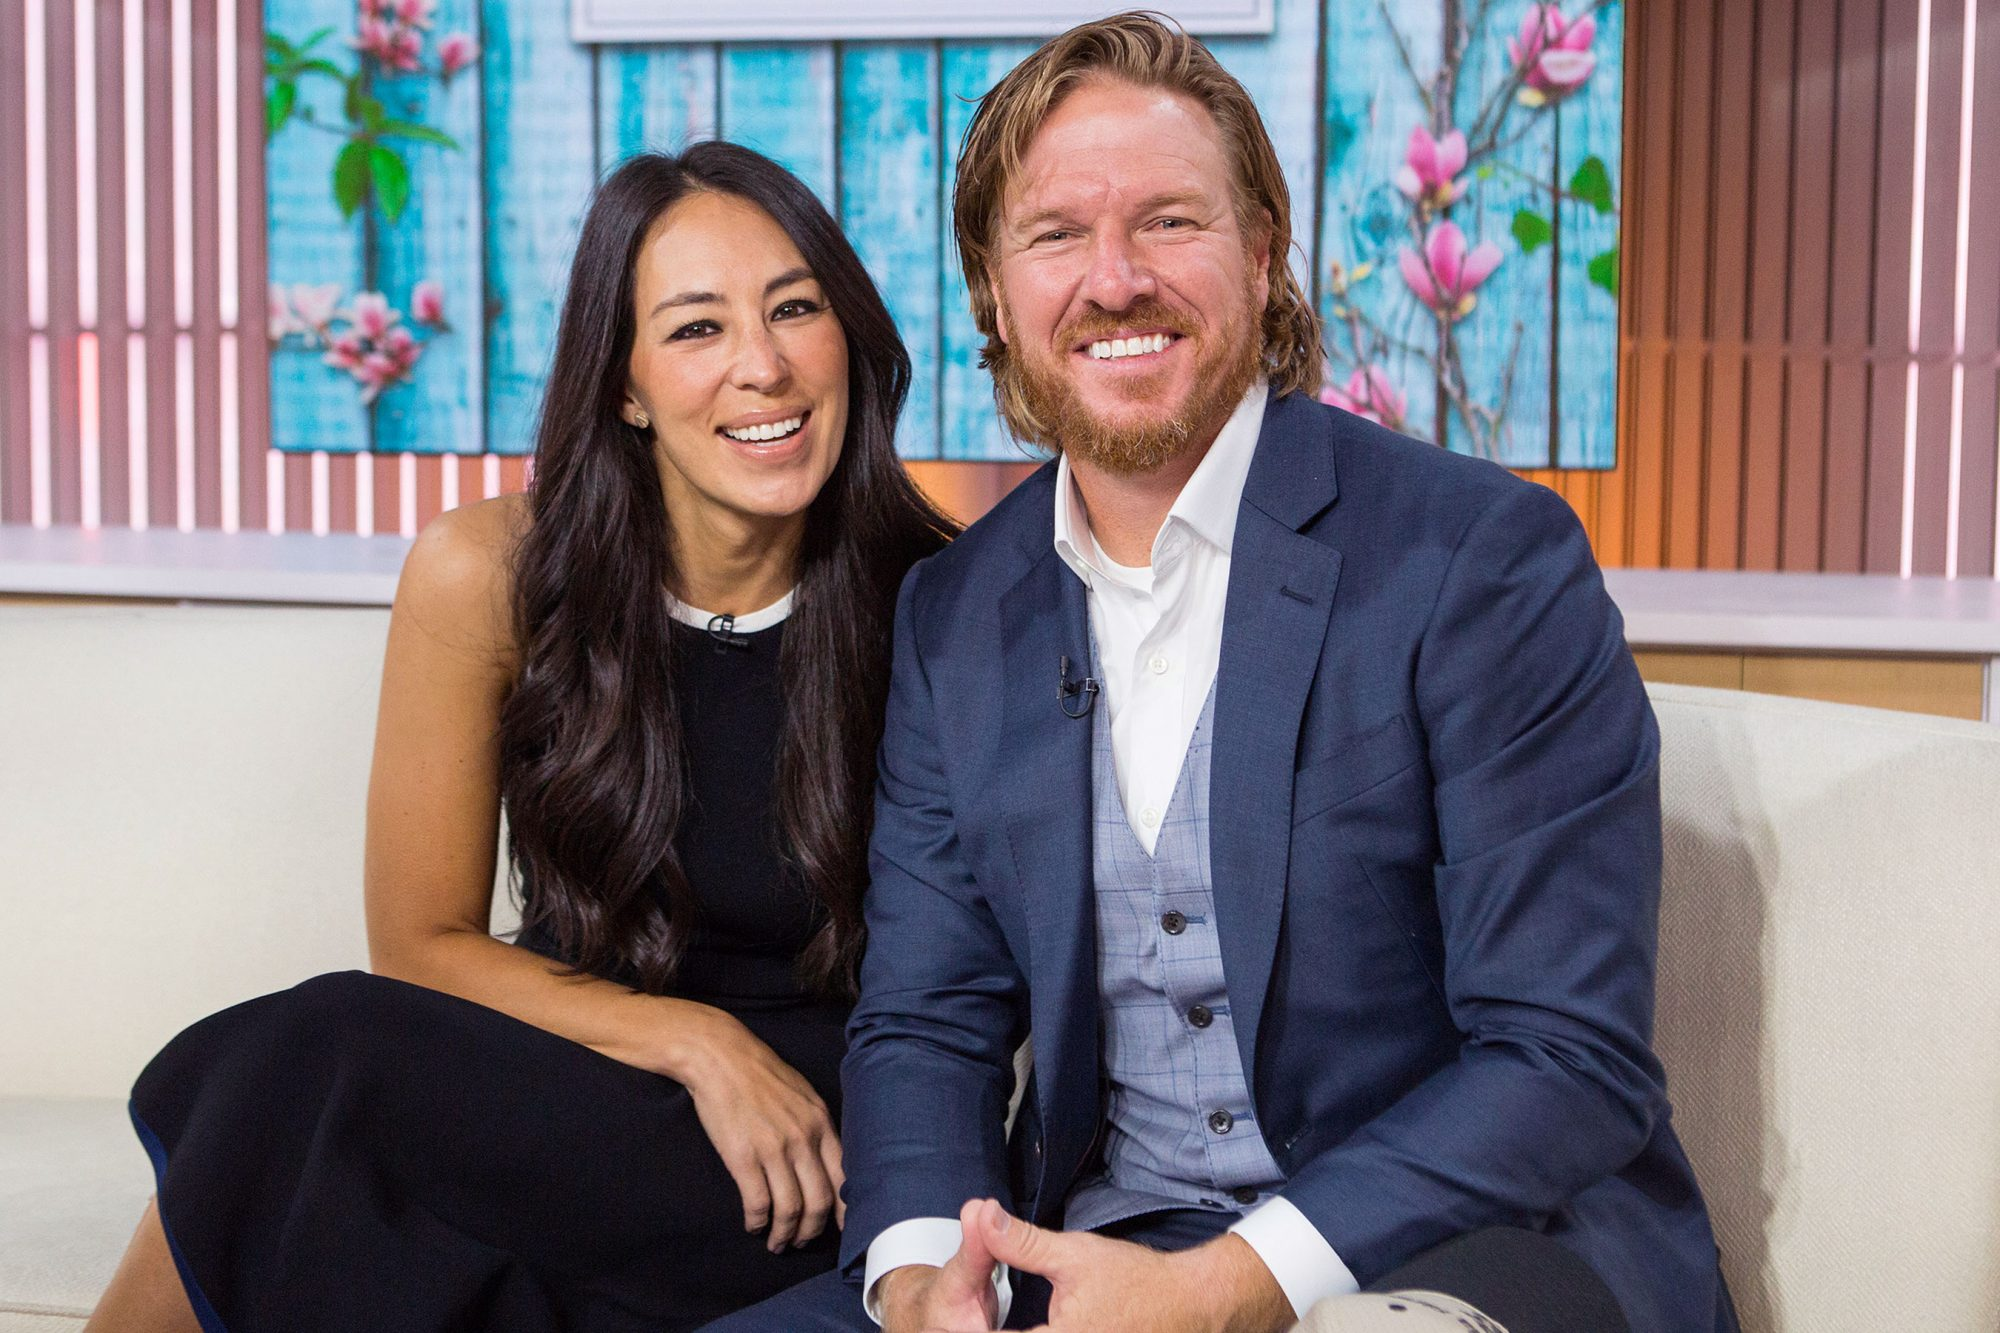 Shopping: Every Single Book by Chip and Joanna Gaines Is Seriously Discounted Right Now